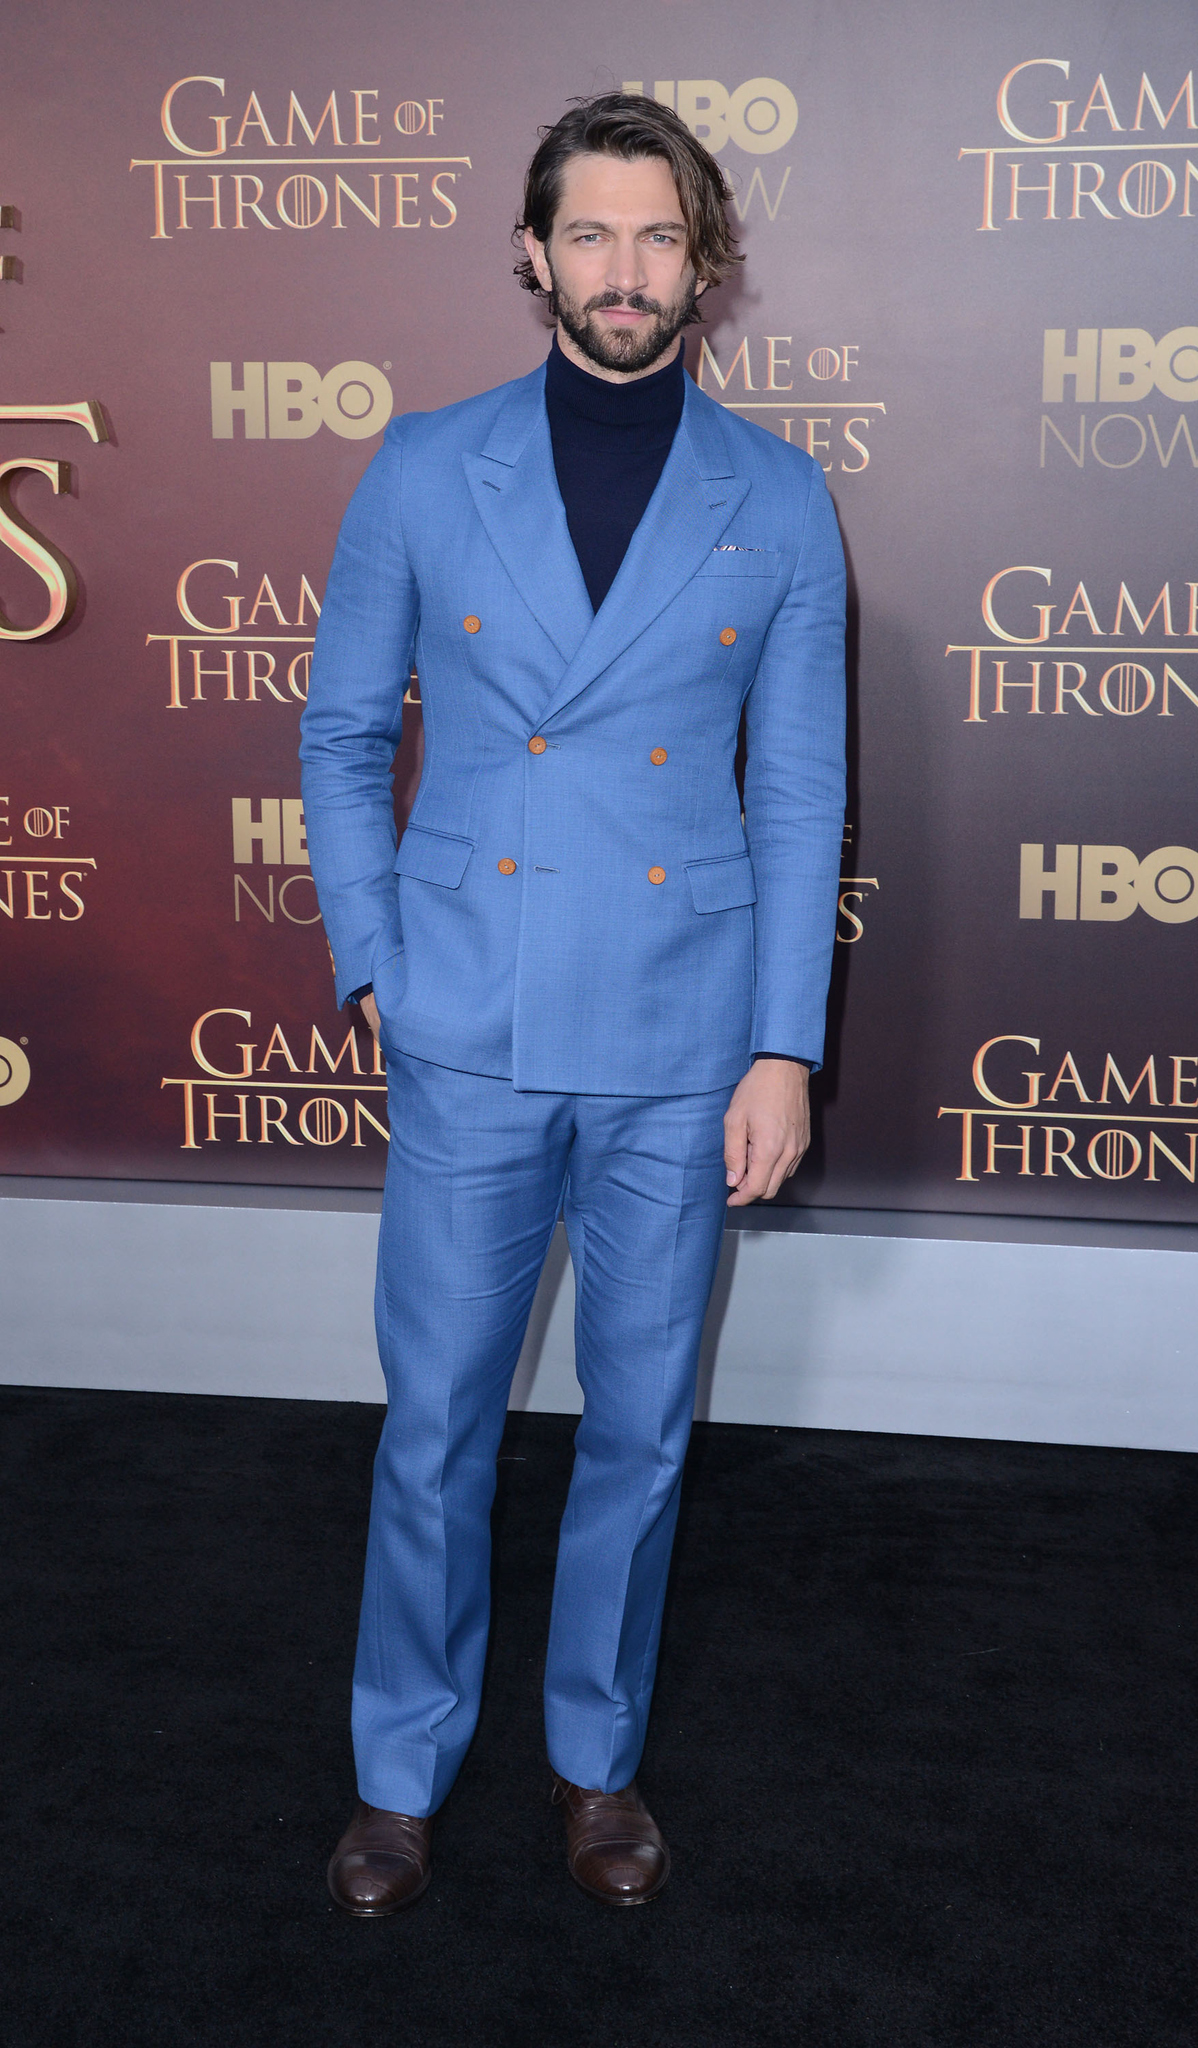 Michiel Huisman at an event for Game of Thrones (2011)